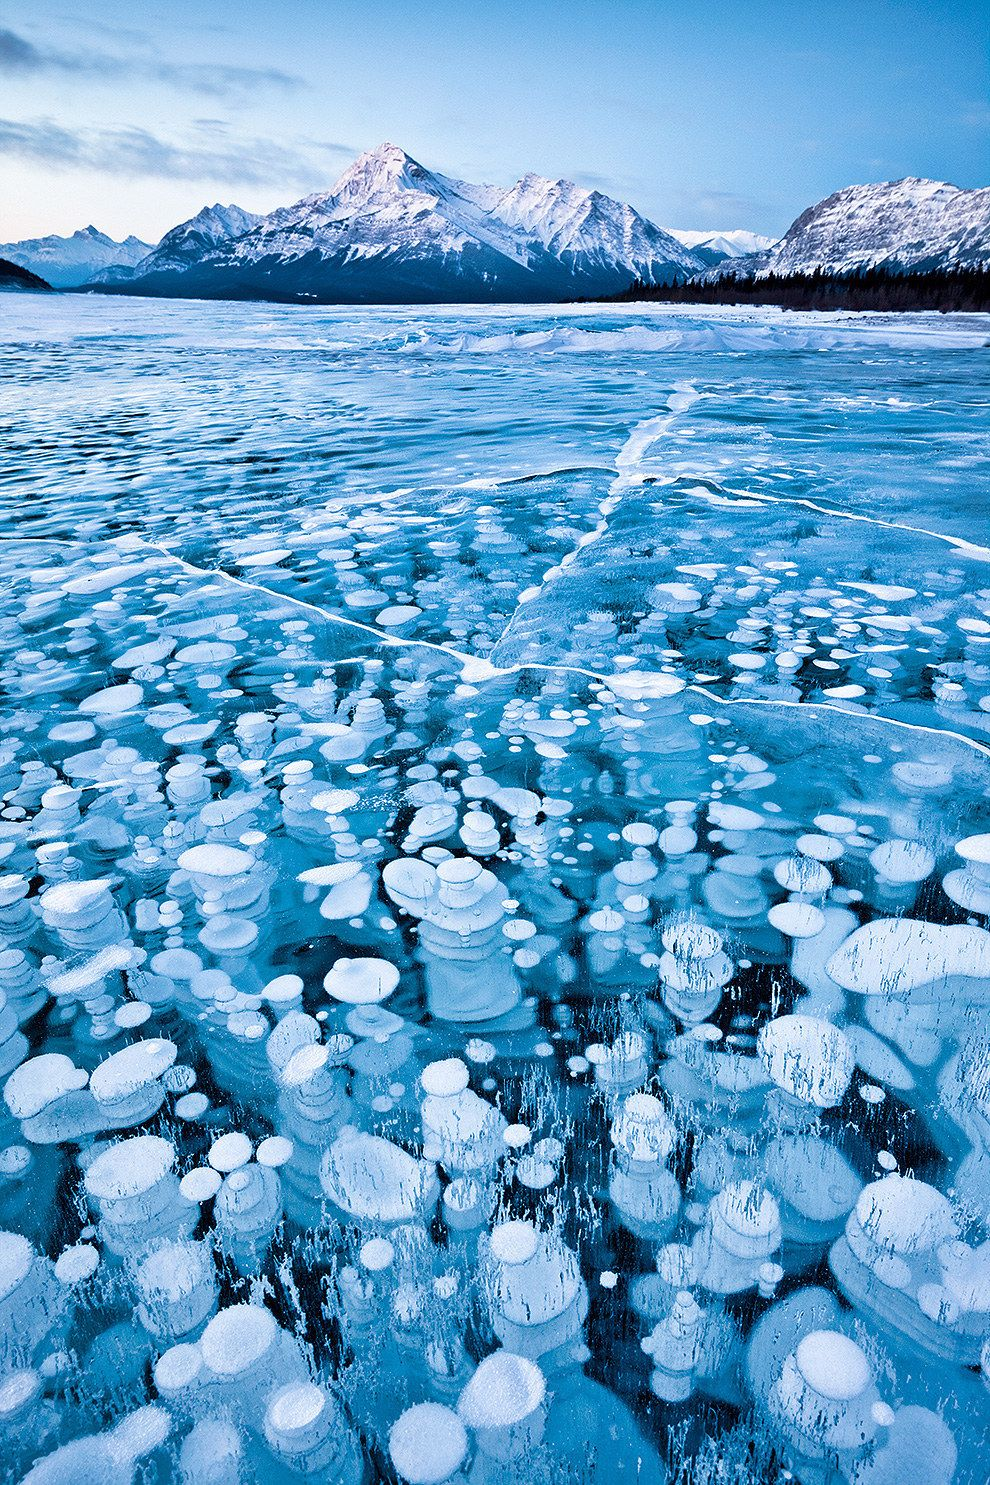 This unique lake in Alberta has nice bubbles near the surface, full of frozen methane gas.